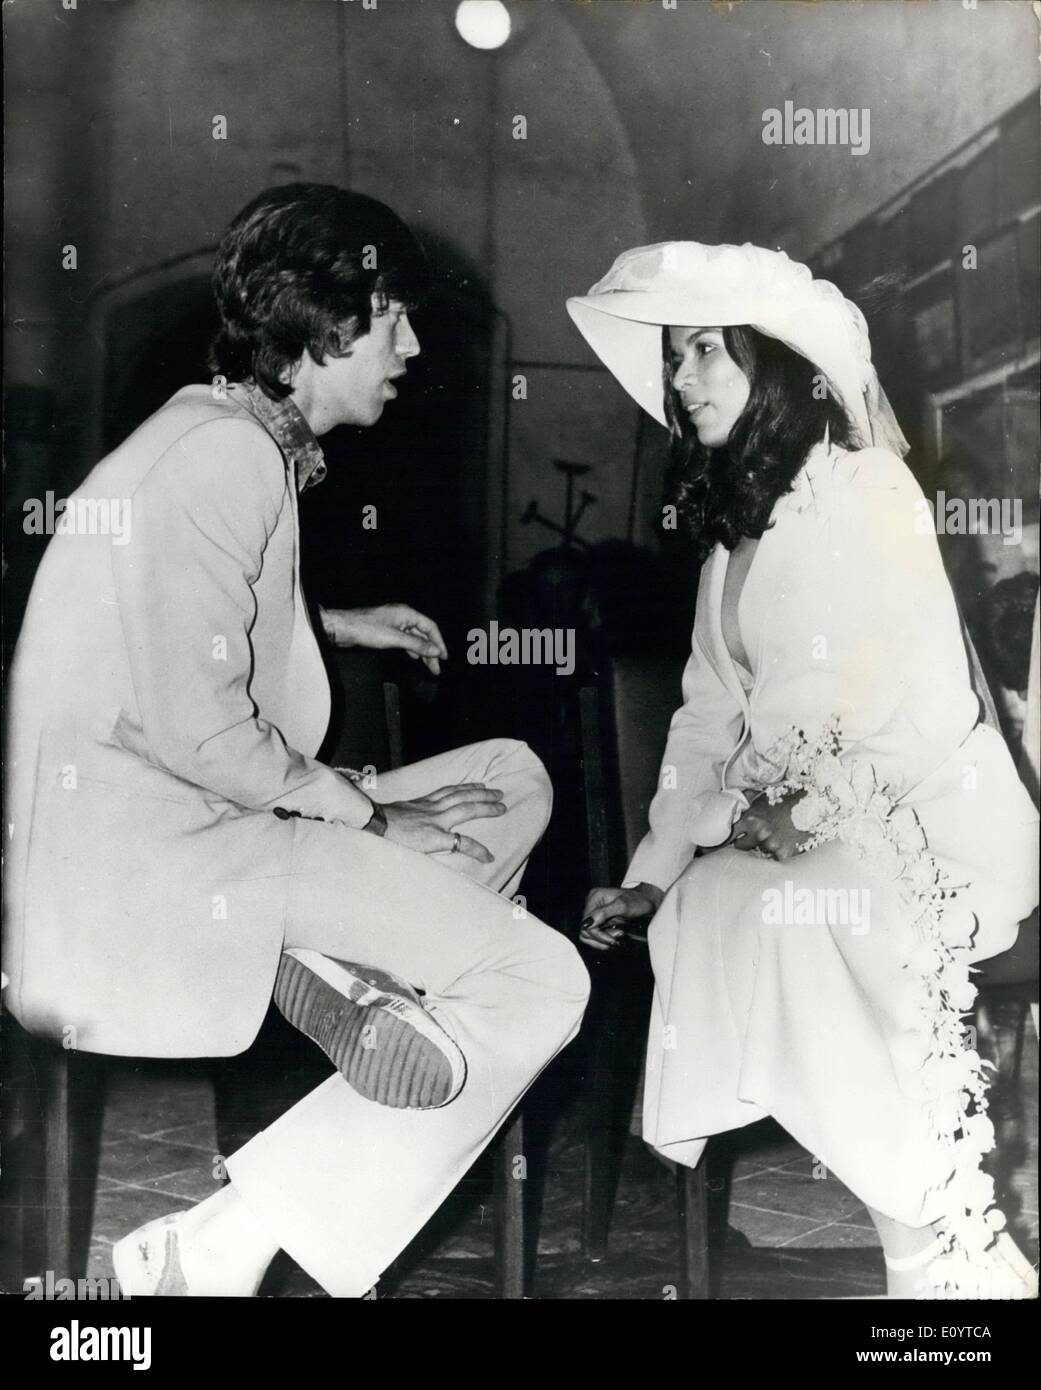 May 15, 1971 - May 15th, 1971 A complete uproar at Jagger's wedding in St. Tropez. Mick Jagger of the Rolling Stones was married earlier this week in the wildest wedding ever seen in the French jet-set resort of St. Tropez. There were fights, curses and tears before Jagger, 27, and his Nicaraguan bride, Bianca Perez Morena de Macias, 21, were pronounced man and wife during a civil ceremony in the local town hall, followed by a second ceremony at the 17th century chapel of St. Anne. Here, too, was chaos - Stock Image